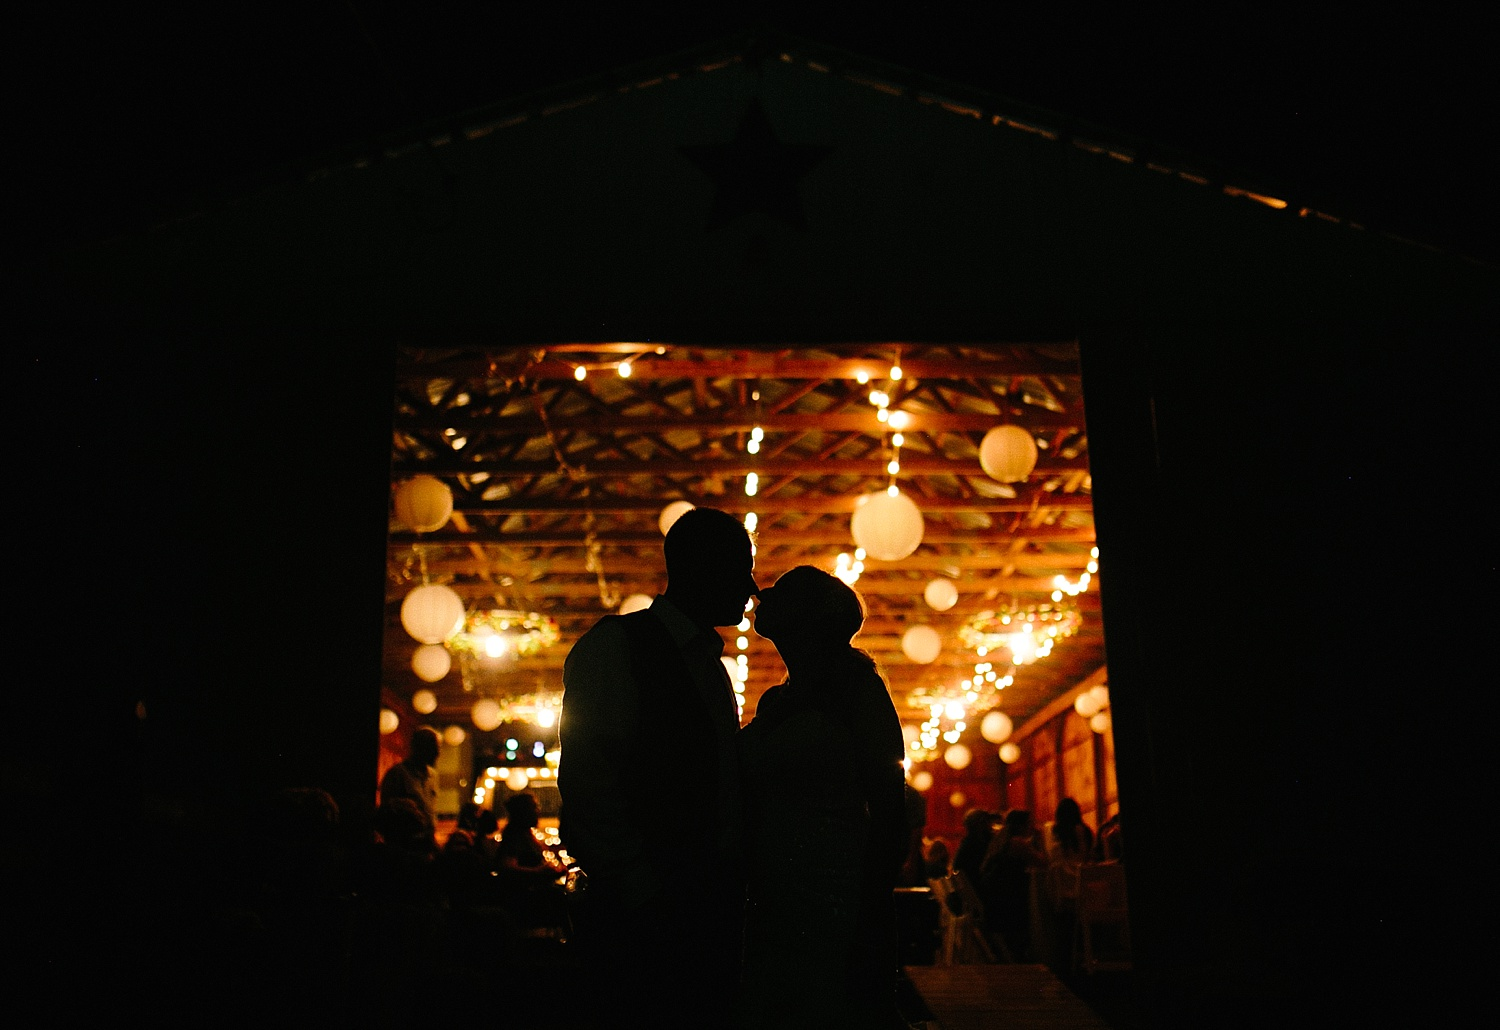 jennyryan_newbeginnings_farmstead_upstatenewyork_wedding_image142.jpg